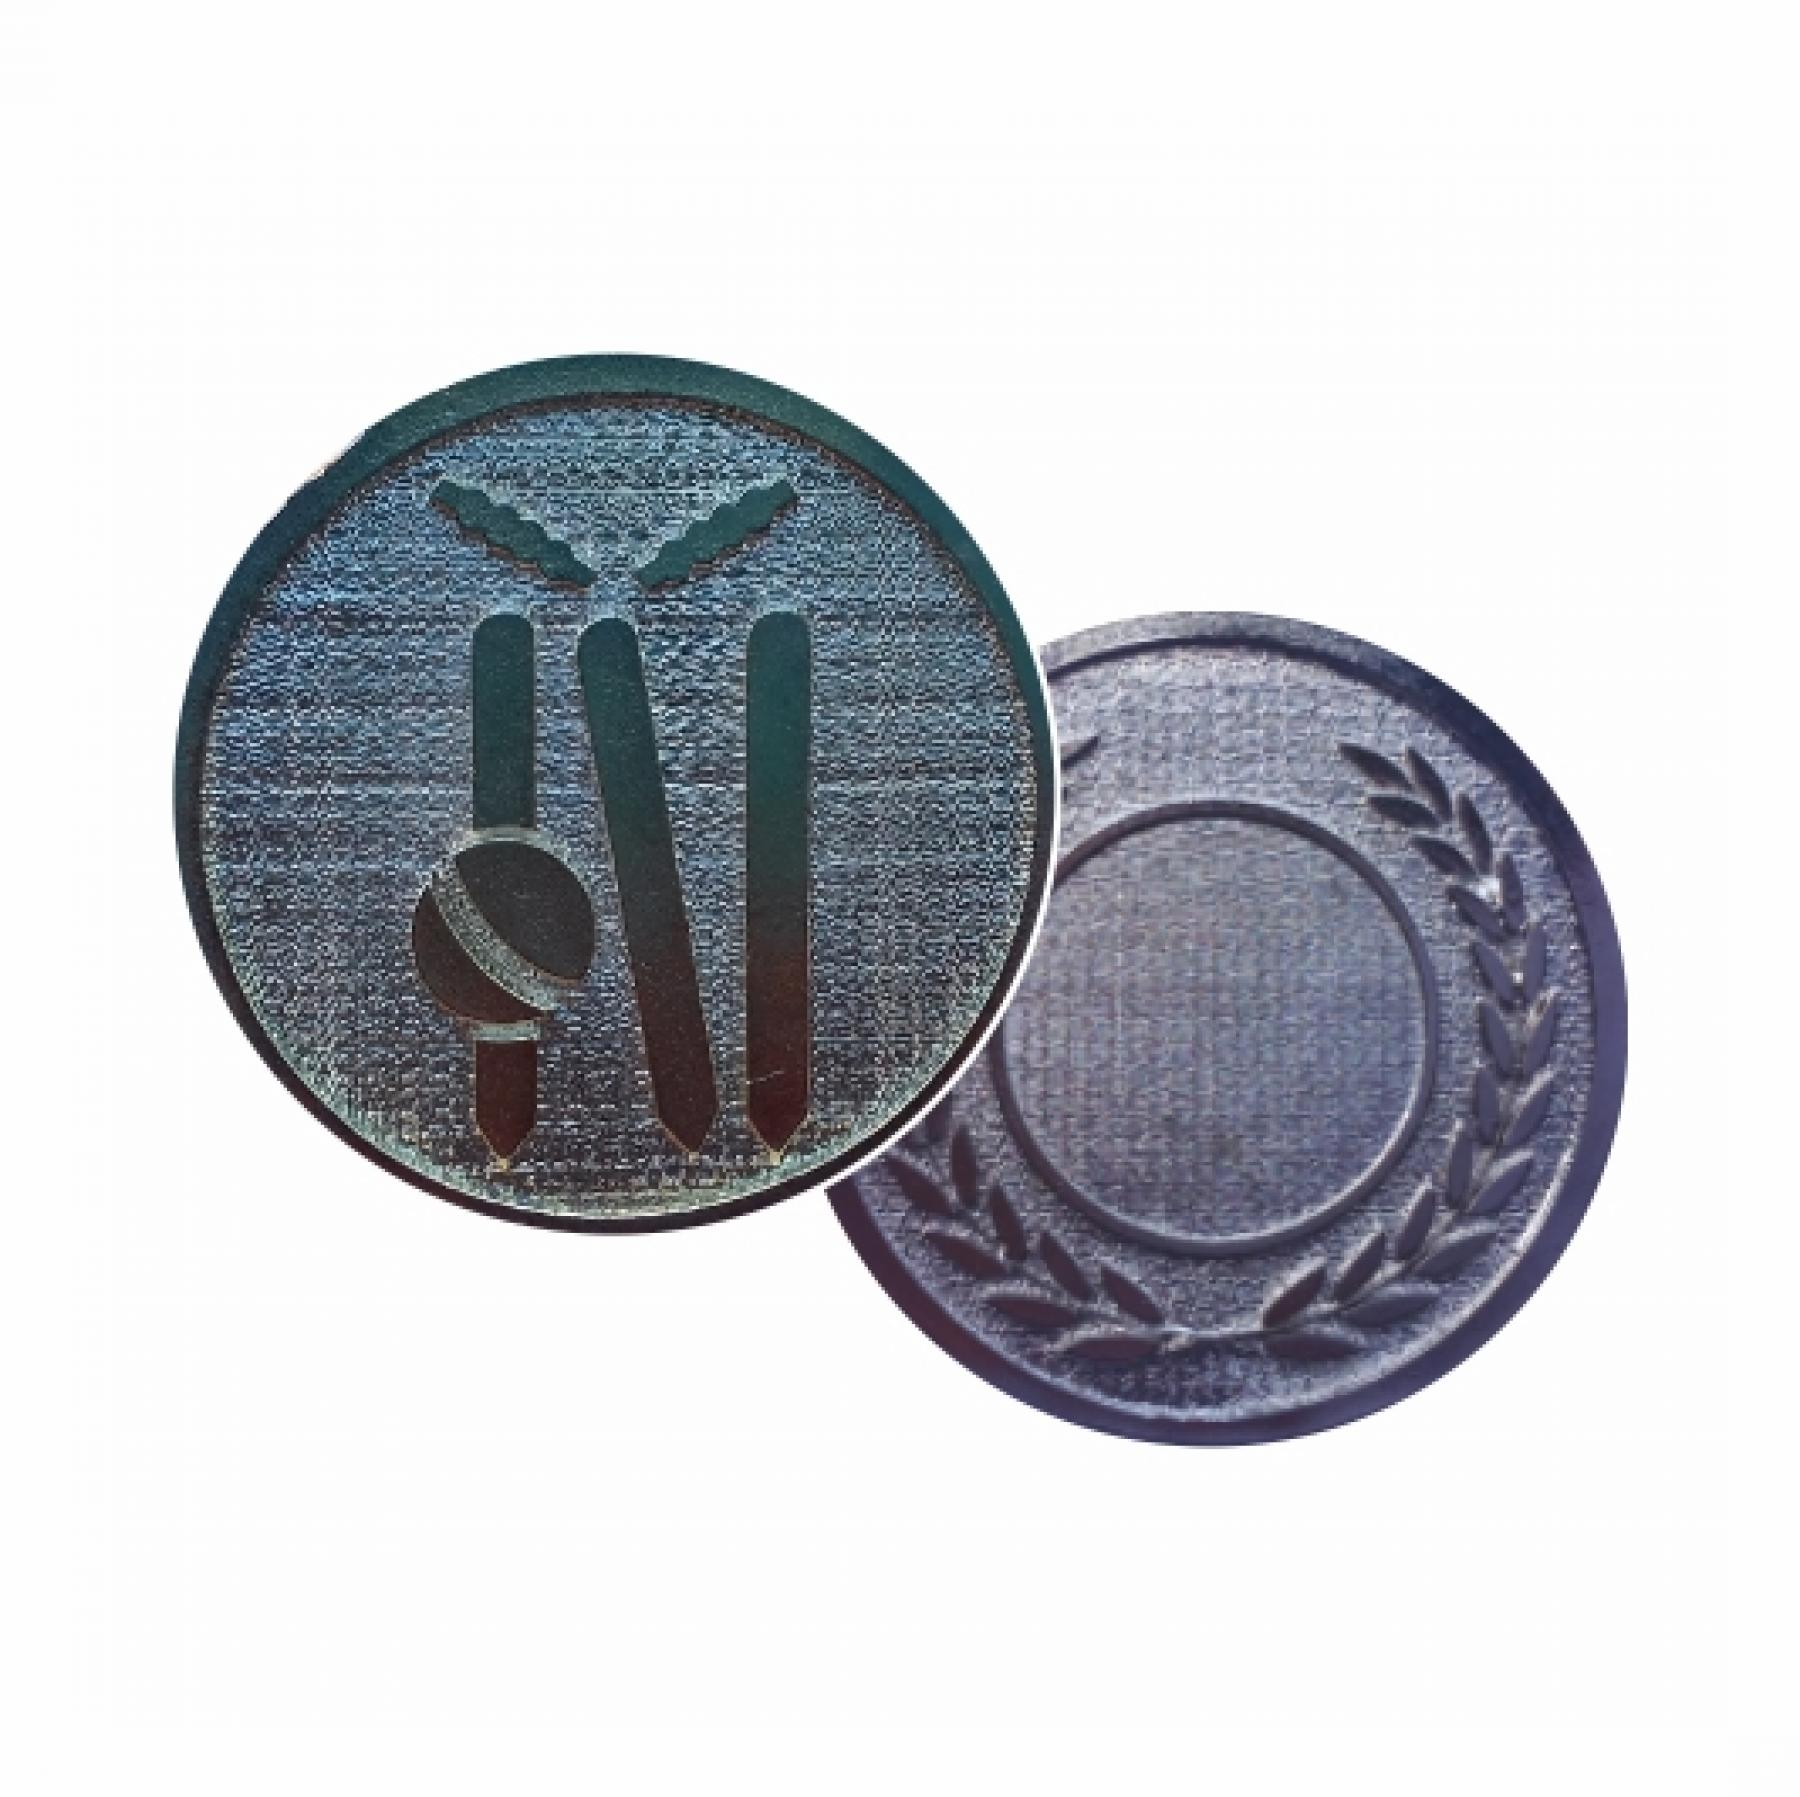 Xco Plated Medals Cricket Silver